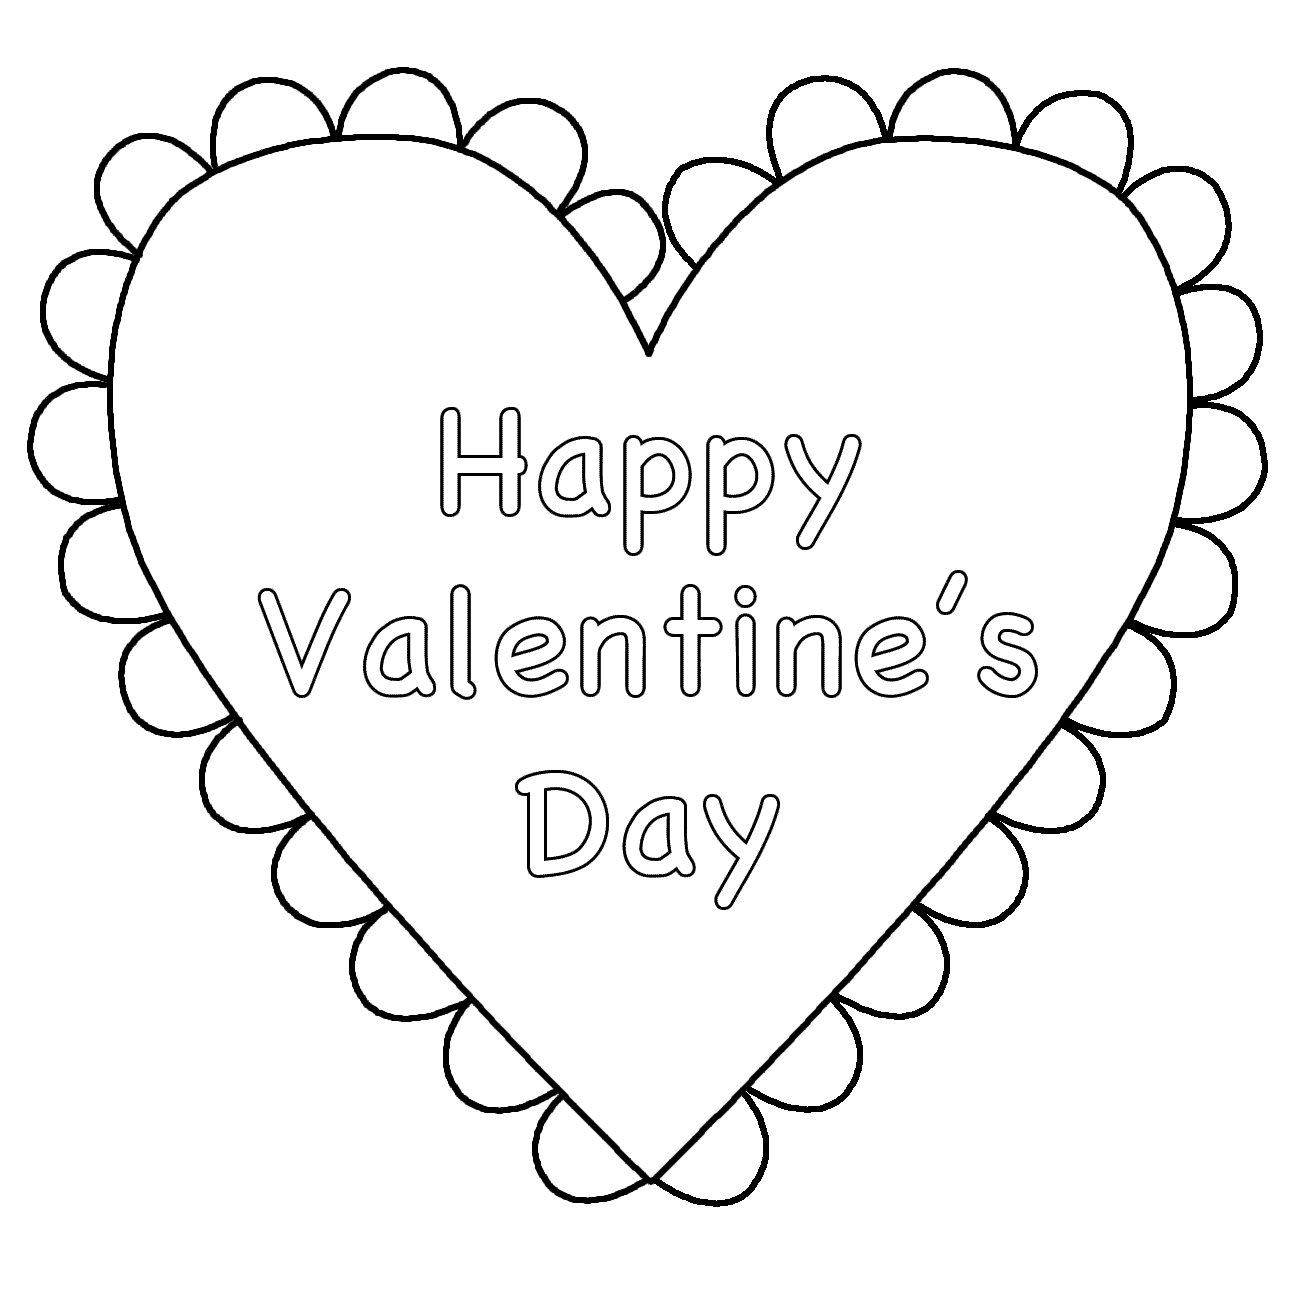 Happy Valentines Day Coloring Pages Printable에 대한 이미지 검색결과